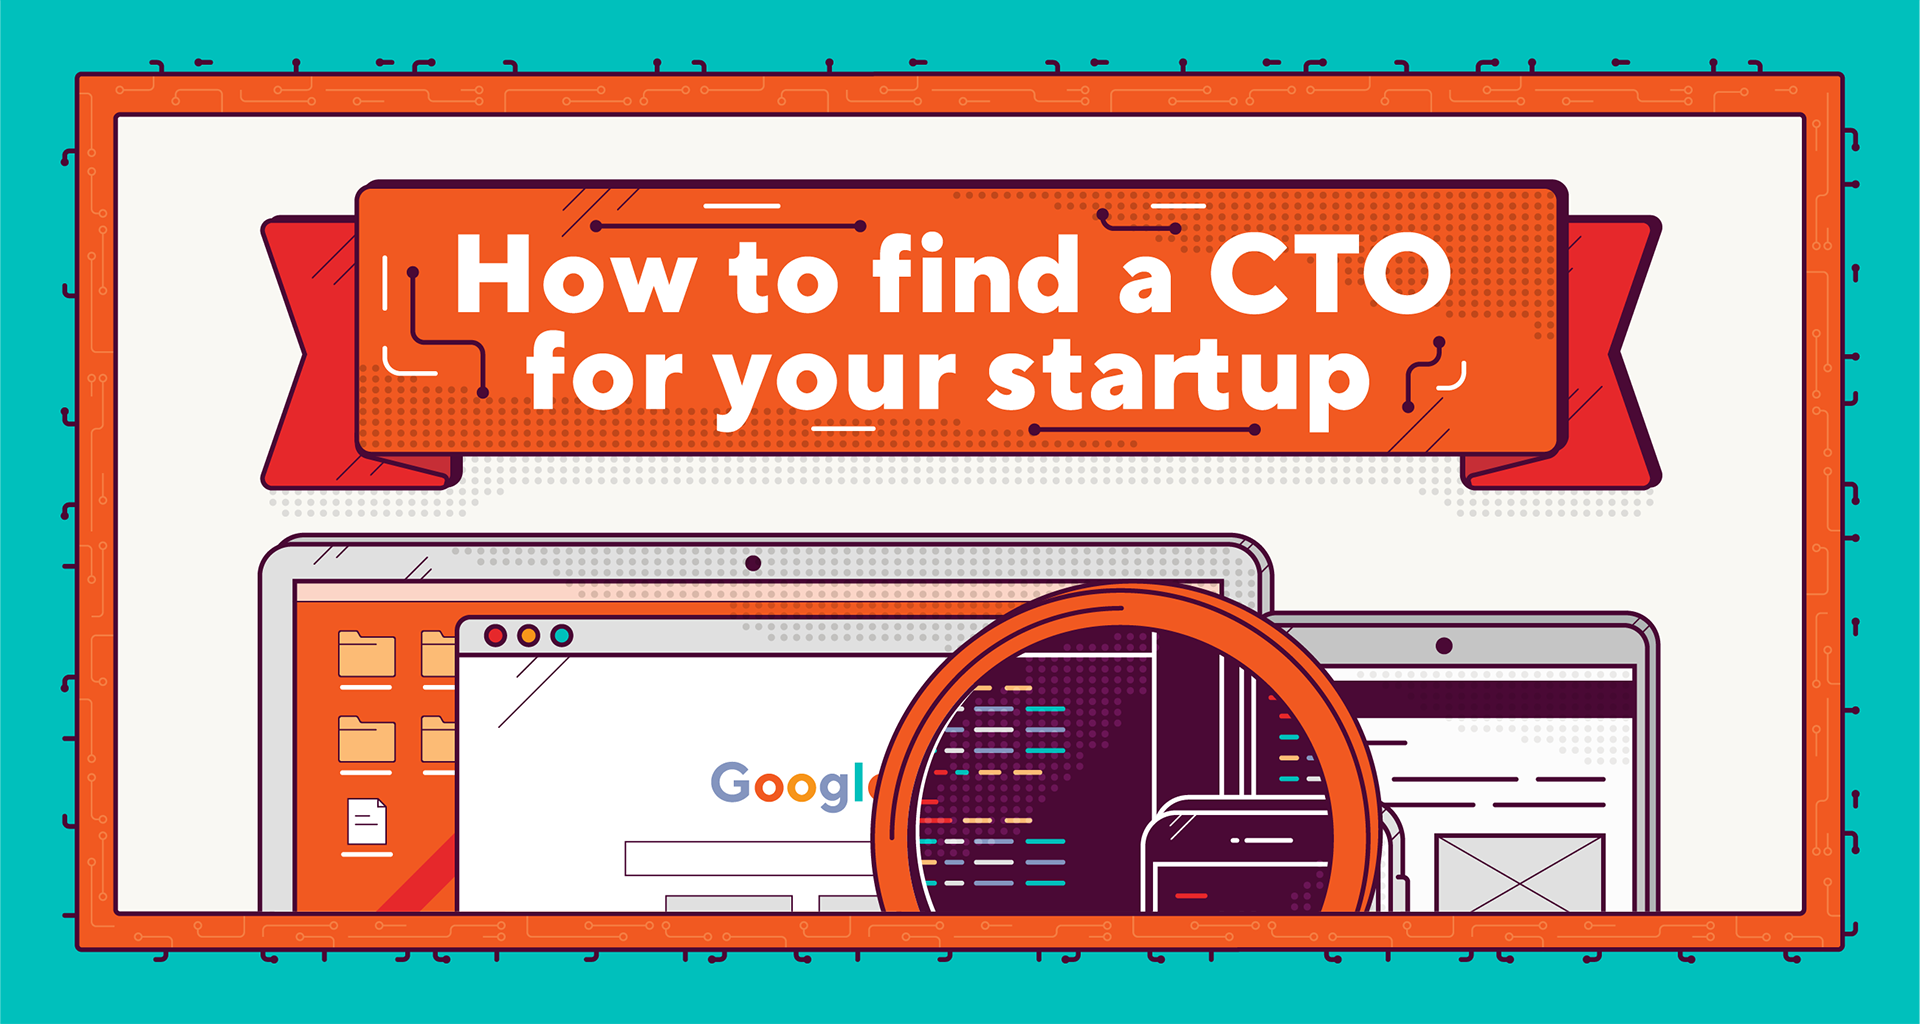 How to find a CTO for your startup